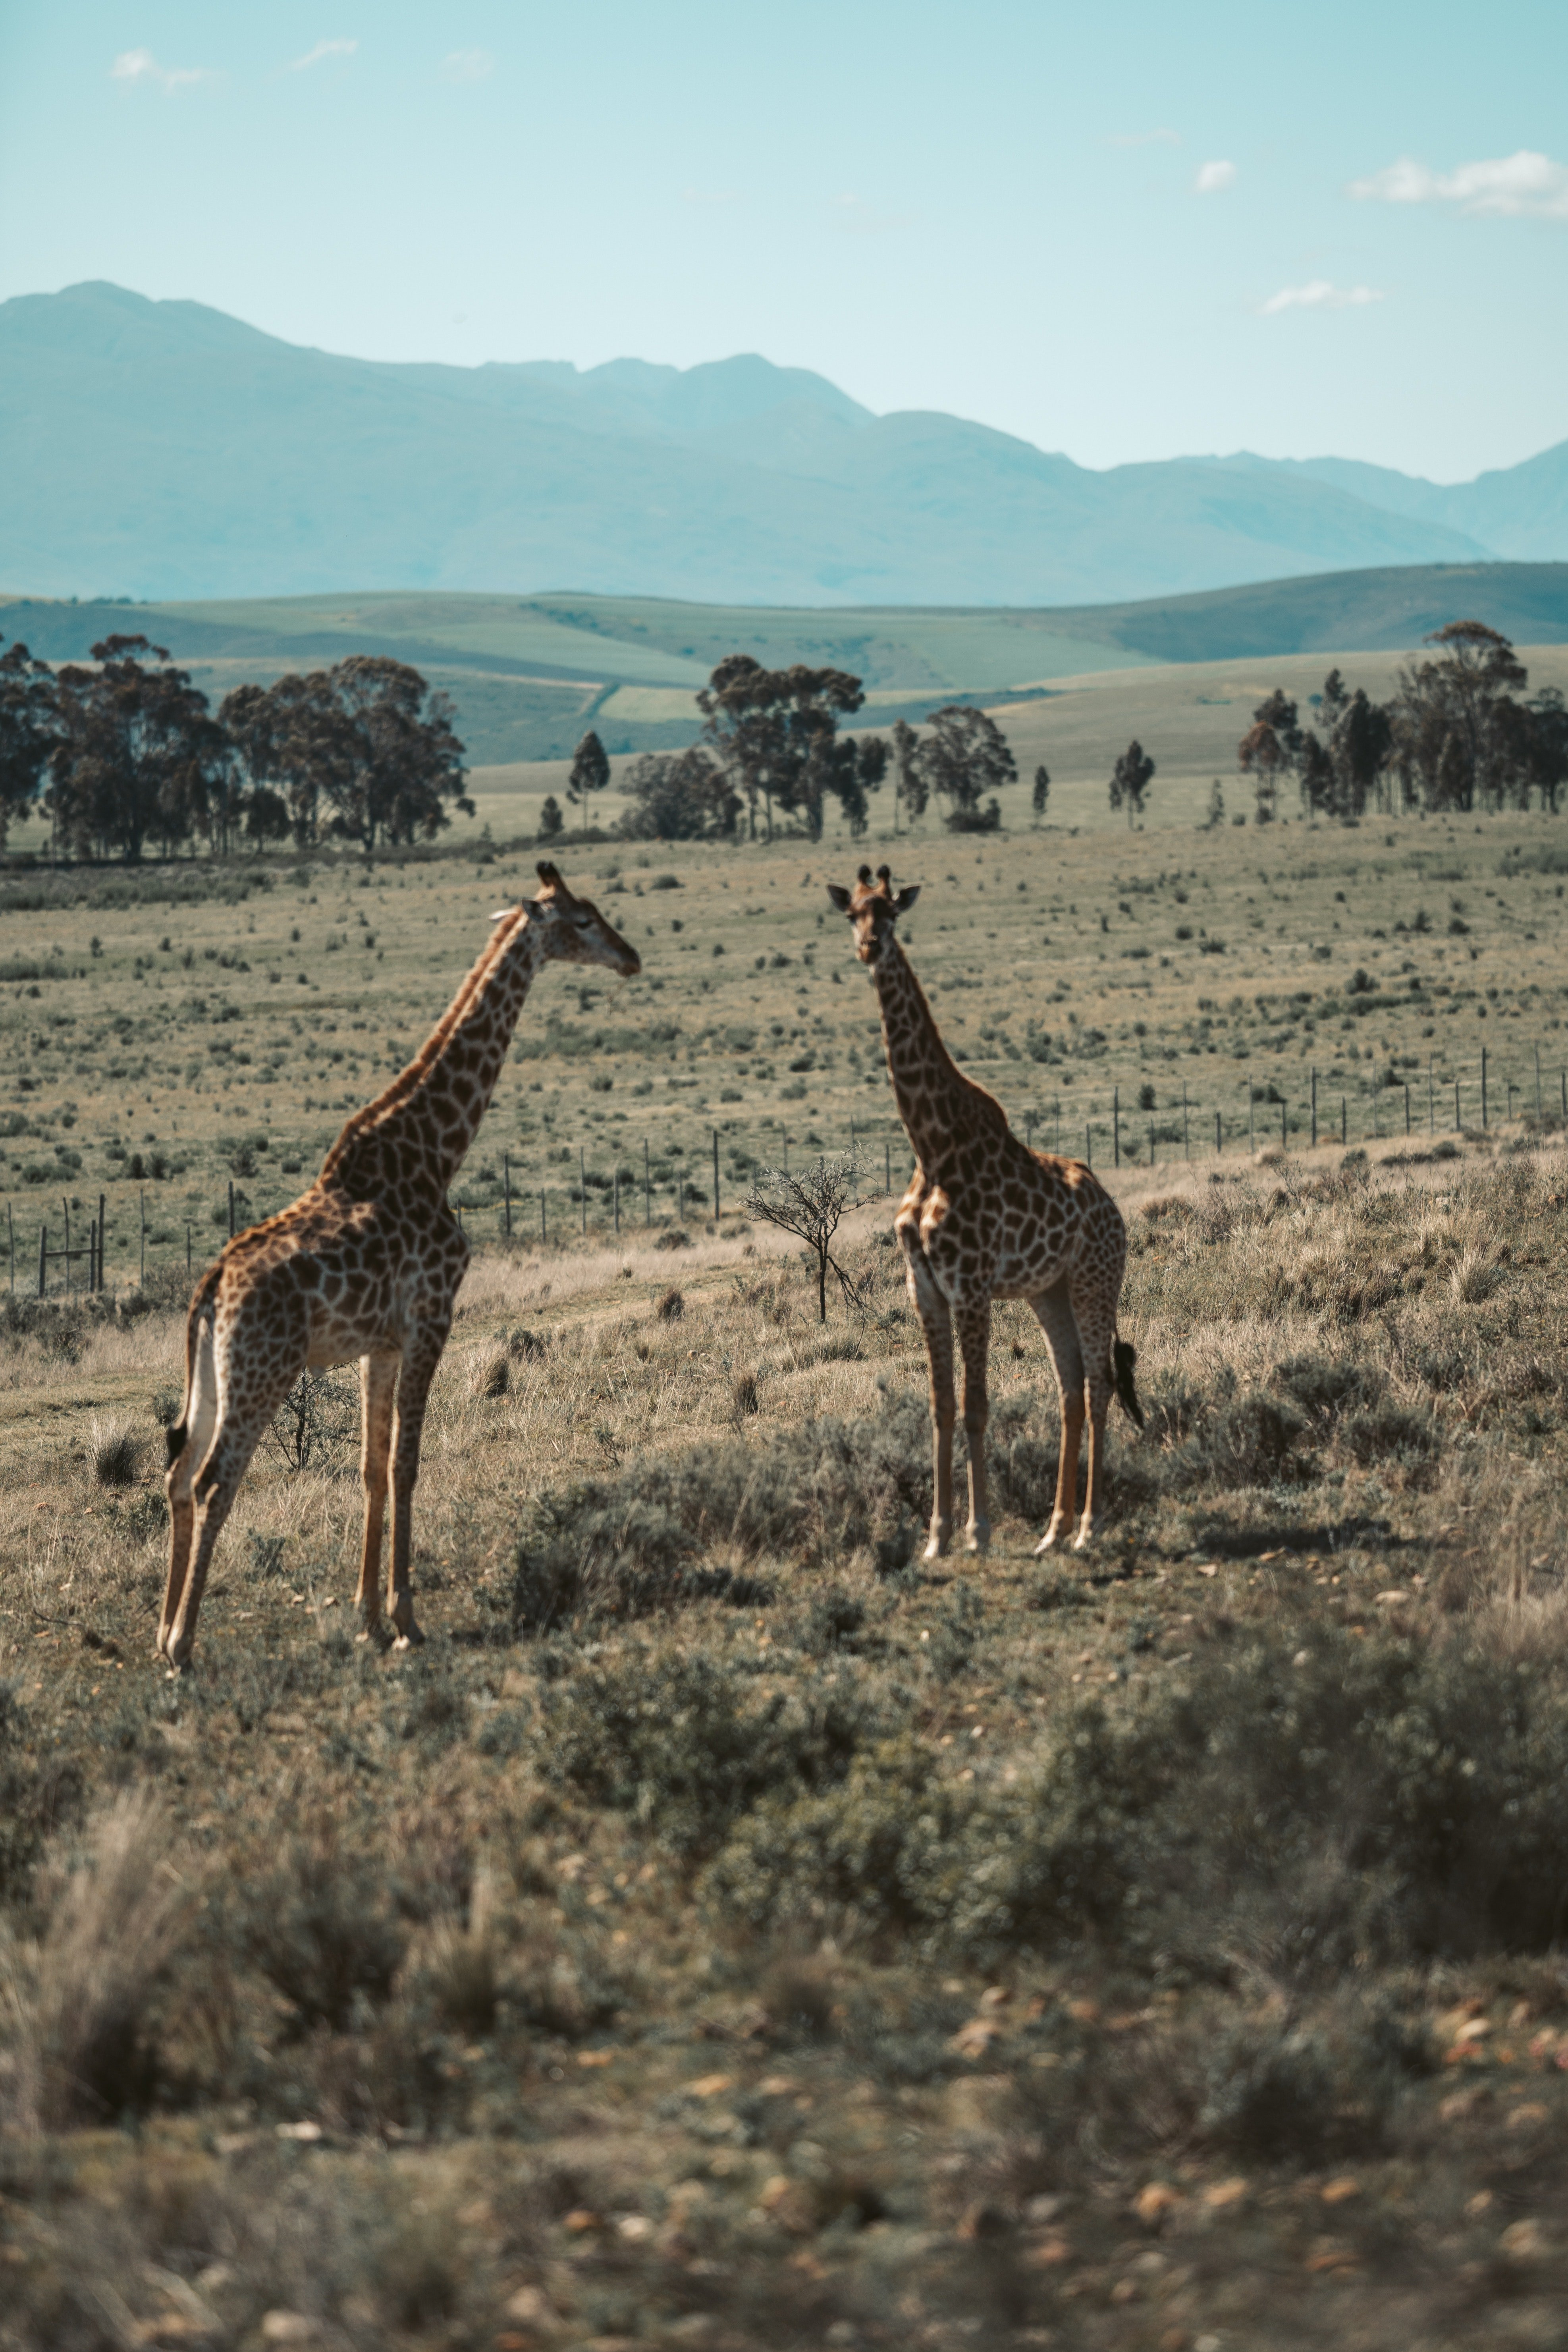 Two giraffes in the wild. | Photo: Pexels